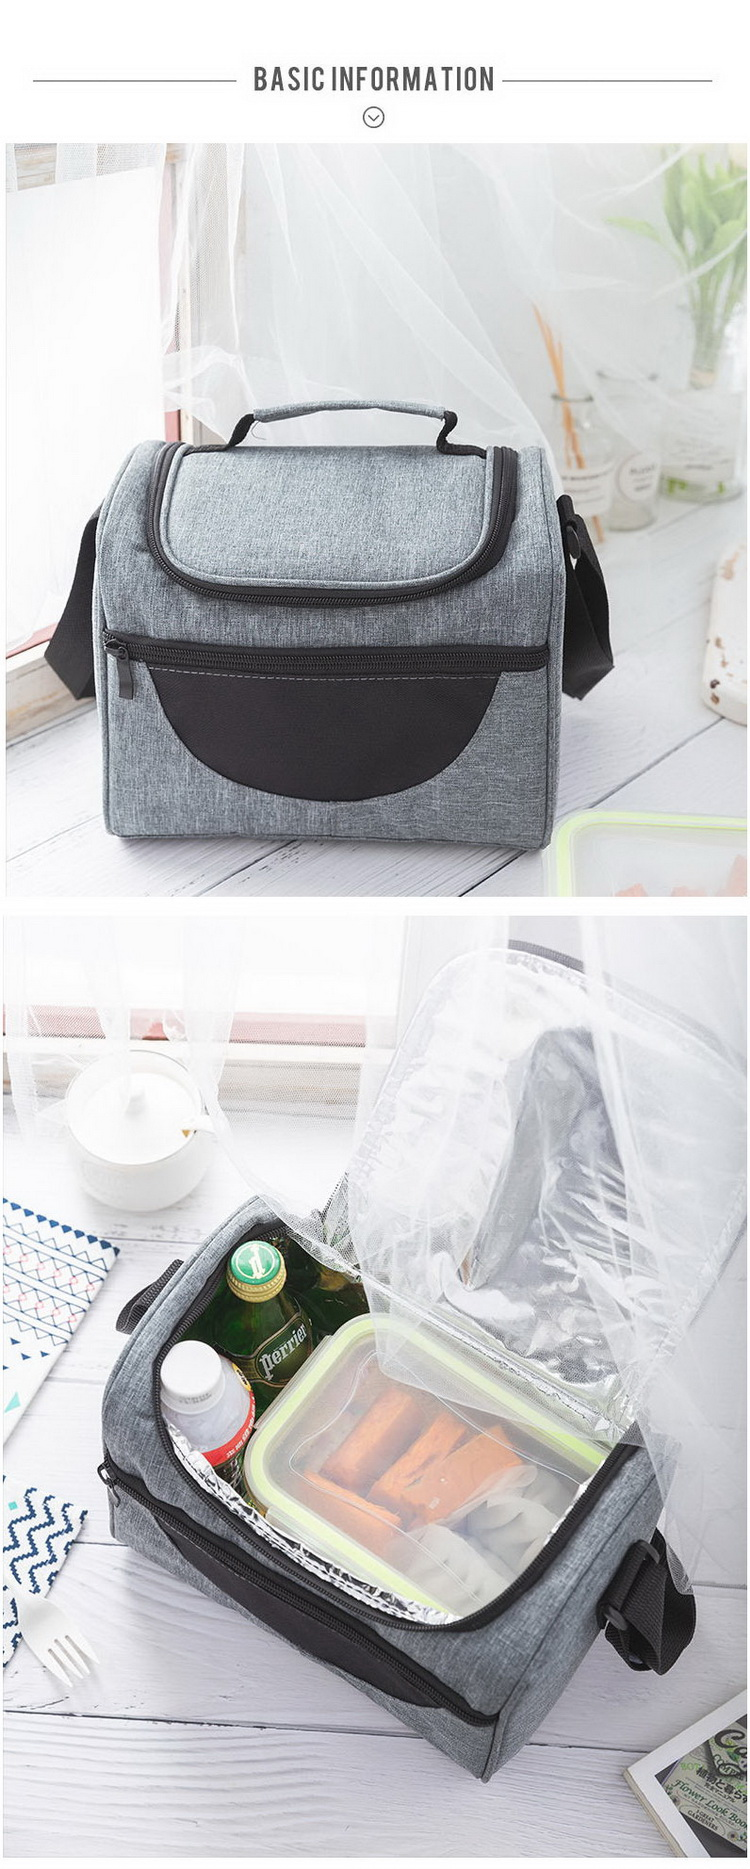 nice Customized Insulated Cooler bag with Adjustable Shoulder Strap  Lunch Bag